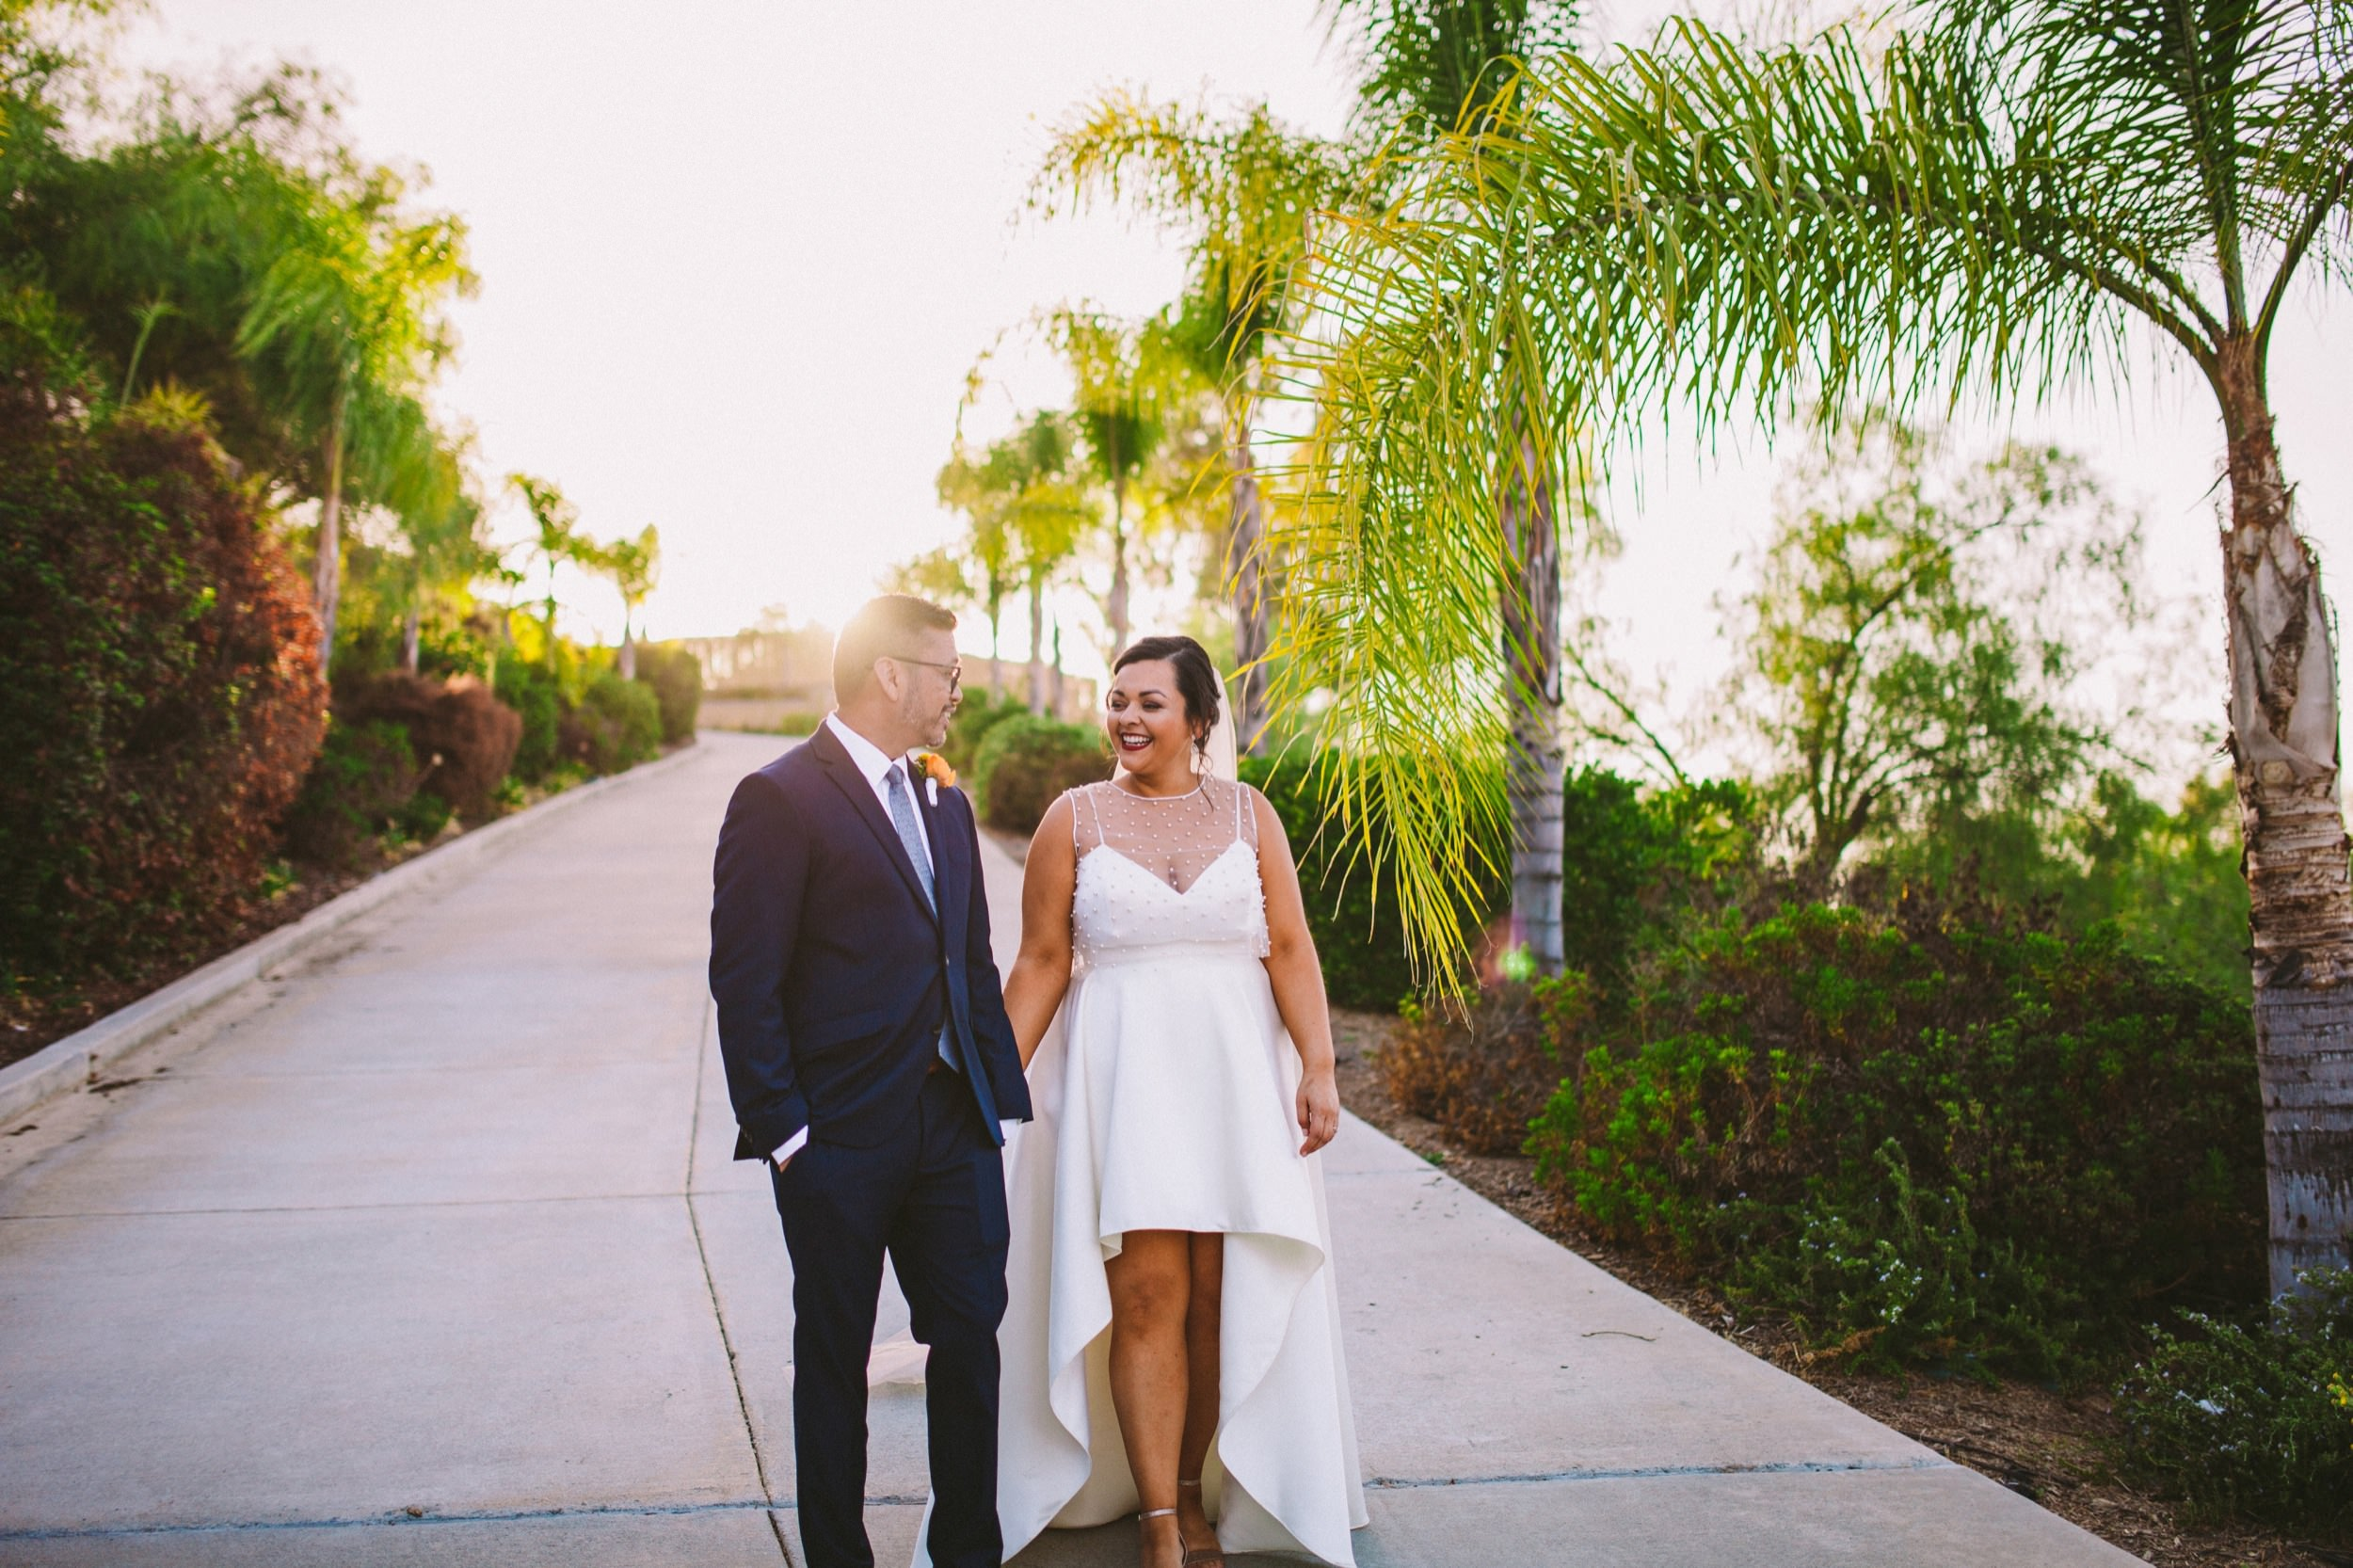 Intimate, Relaxed & Colorful Wedding Photography in Temecula-326.jpg